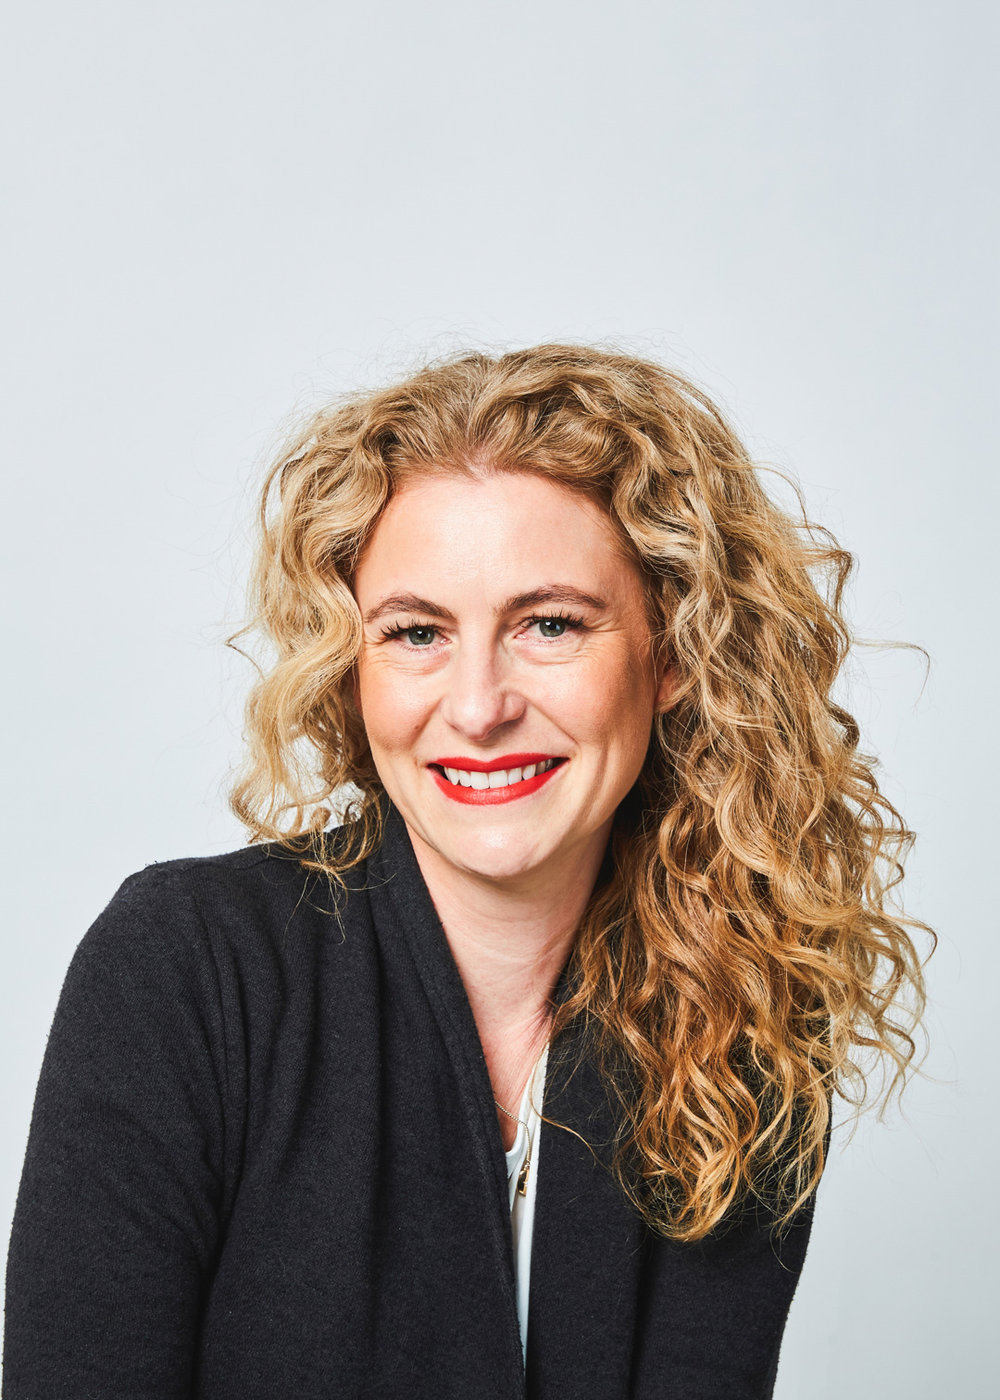 CASSANDRA - Cassandra brings 12 years of industry experience to our salon. She offers cuts and colors and is an absolute genius when it comes to working with curly or unruly hair. Your mane will have never before been so tame!Book an appointment here!